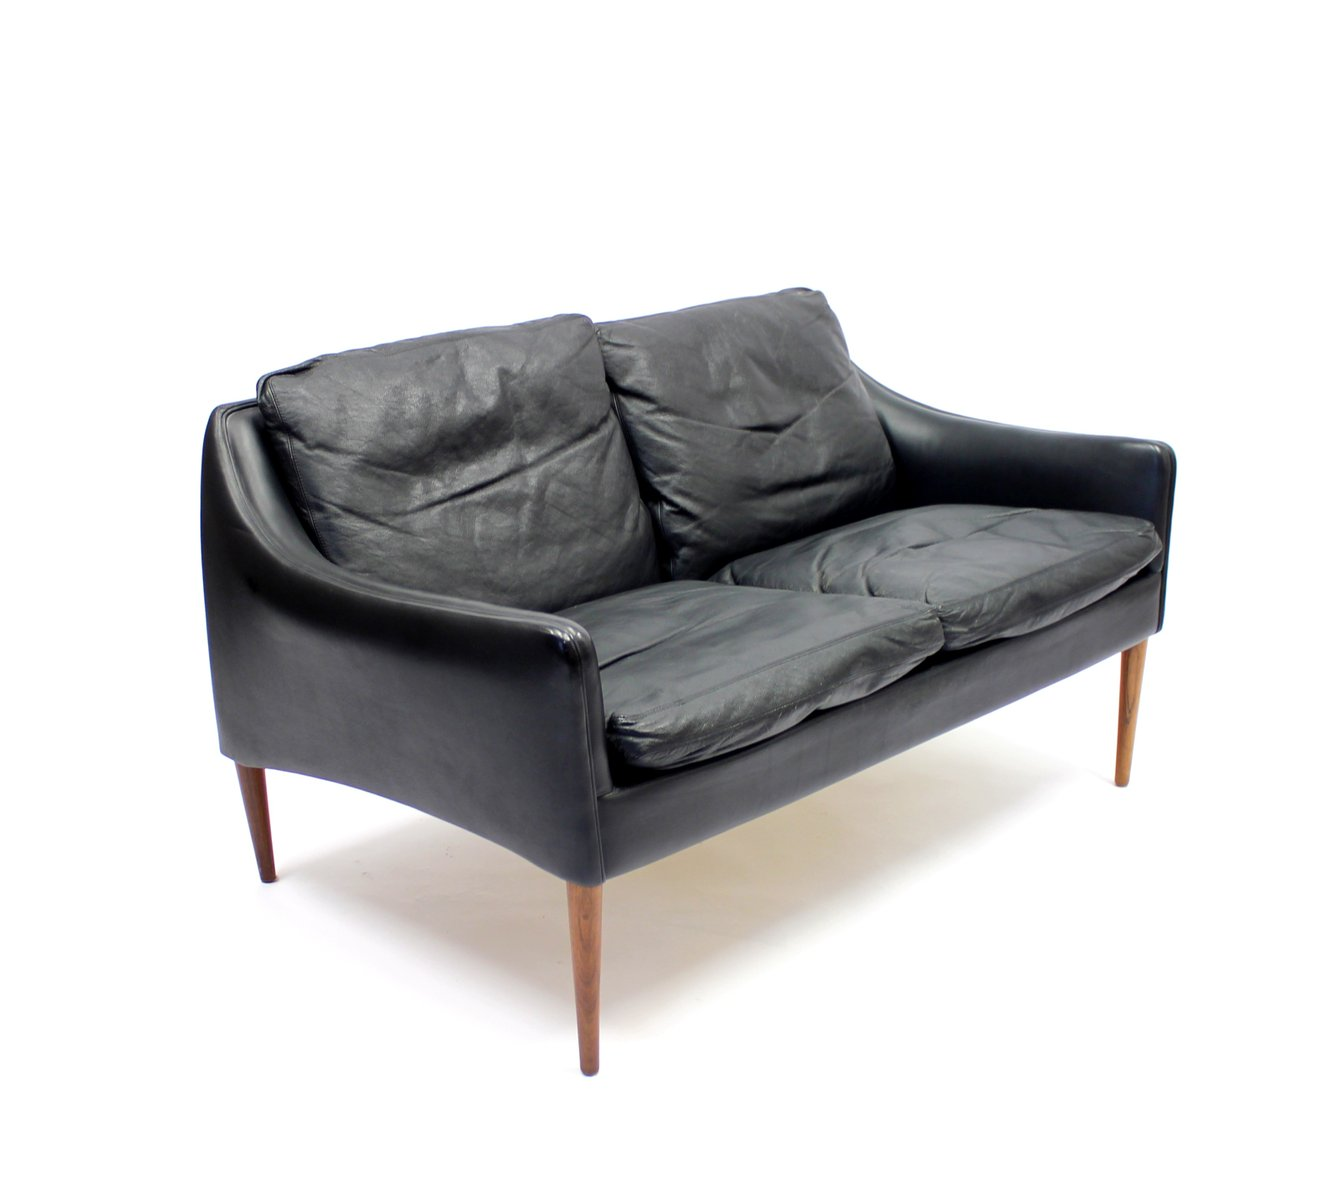 2 sitzer sofa aus leder palisander von hans olsen f r cs m belfabrik 1960er bei pamono kaufen. Black Bedroom Furniture Sets. Home Design Ideas